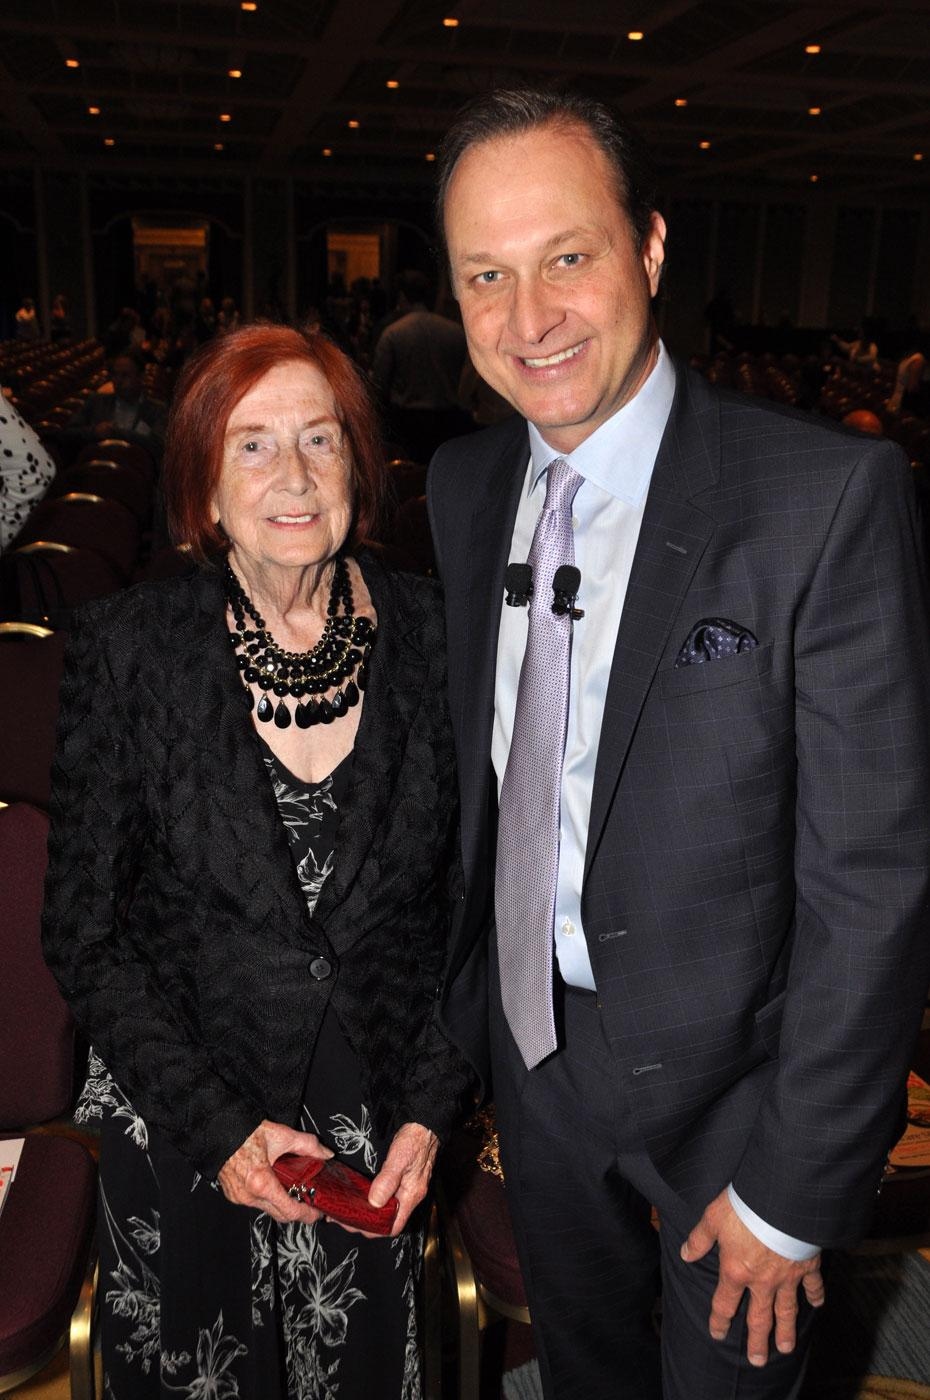 Mary Jaffray and her son, Richard Jaffray, Cactus Club Restaurants CEO and BCBusiness Top 100 honouree